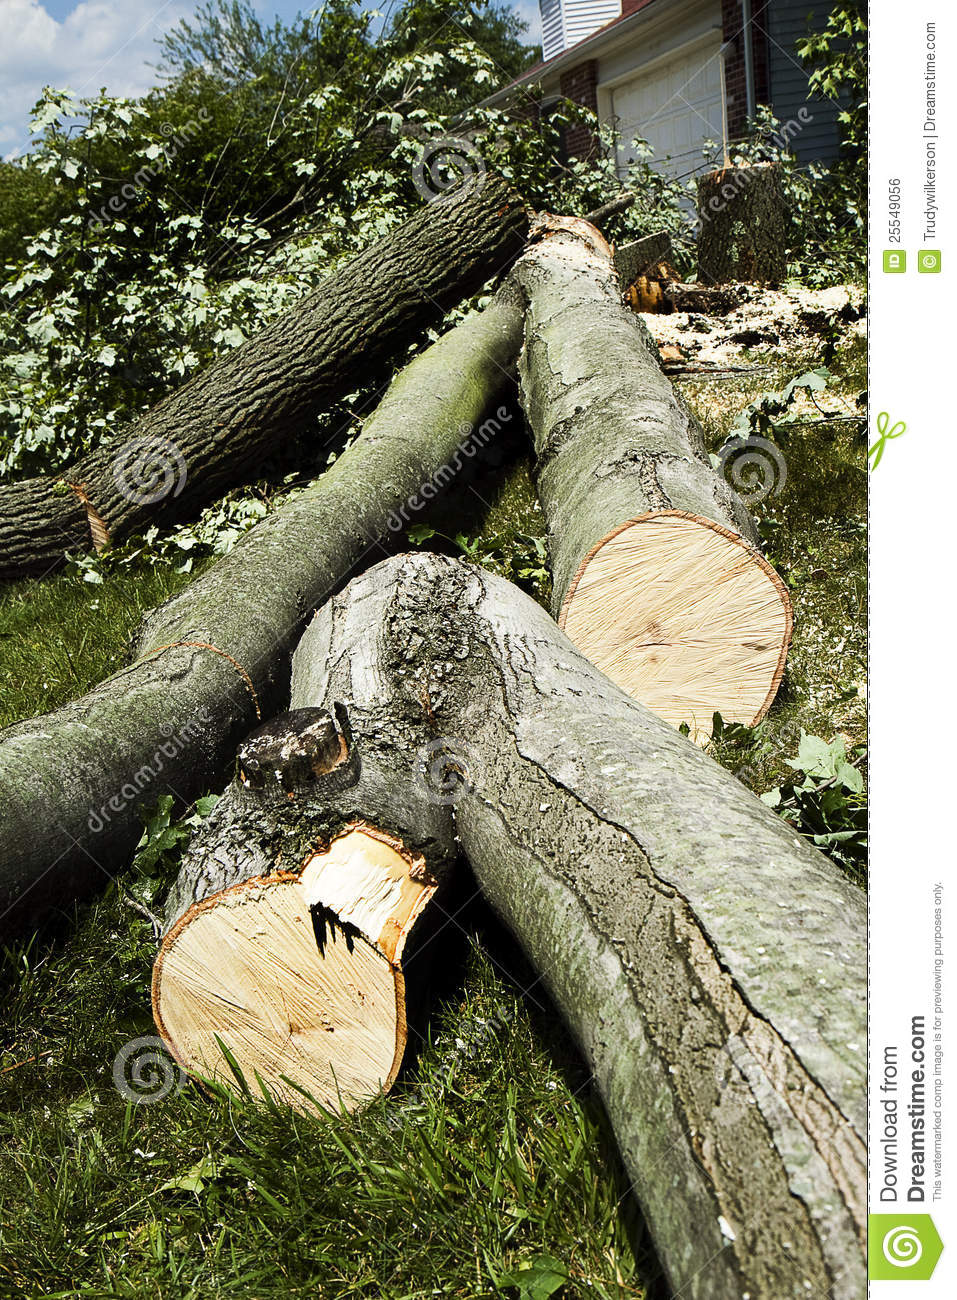 how to cut logs from trees to build home